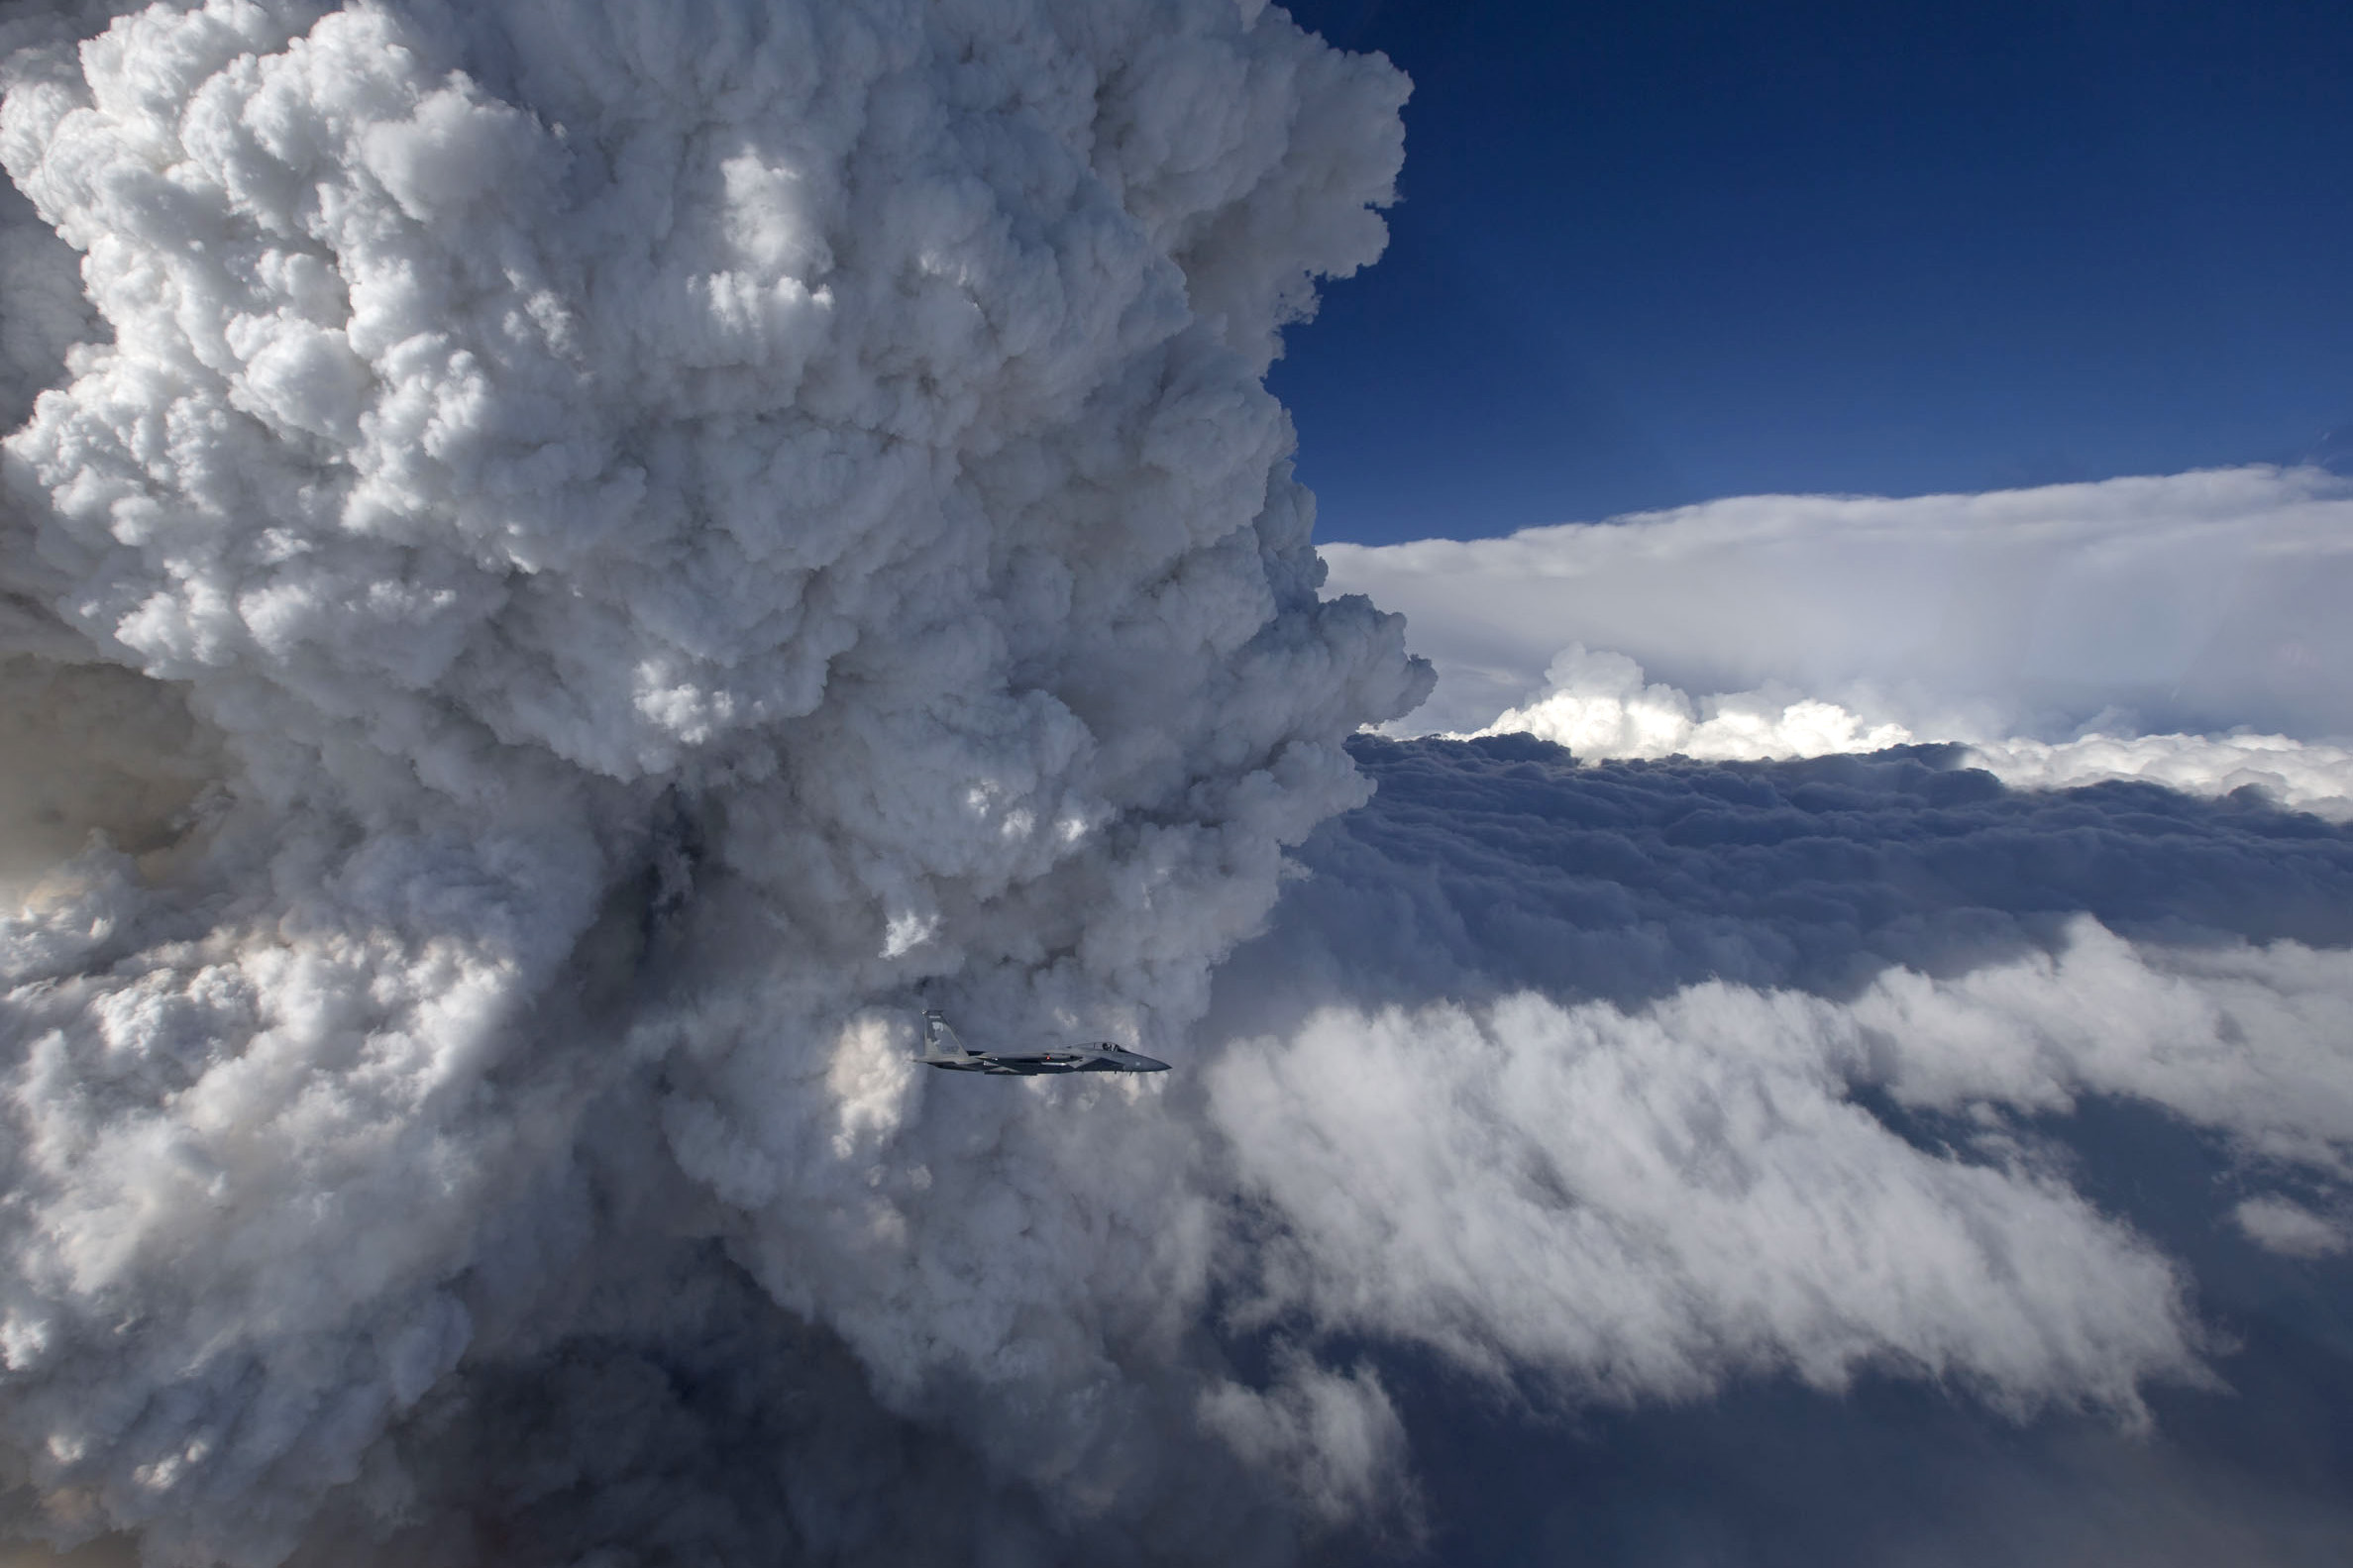 Giant Fire Clouds Over California - ImaGeo